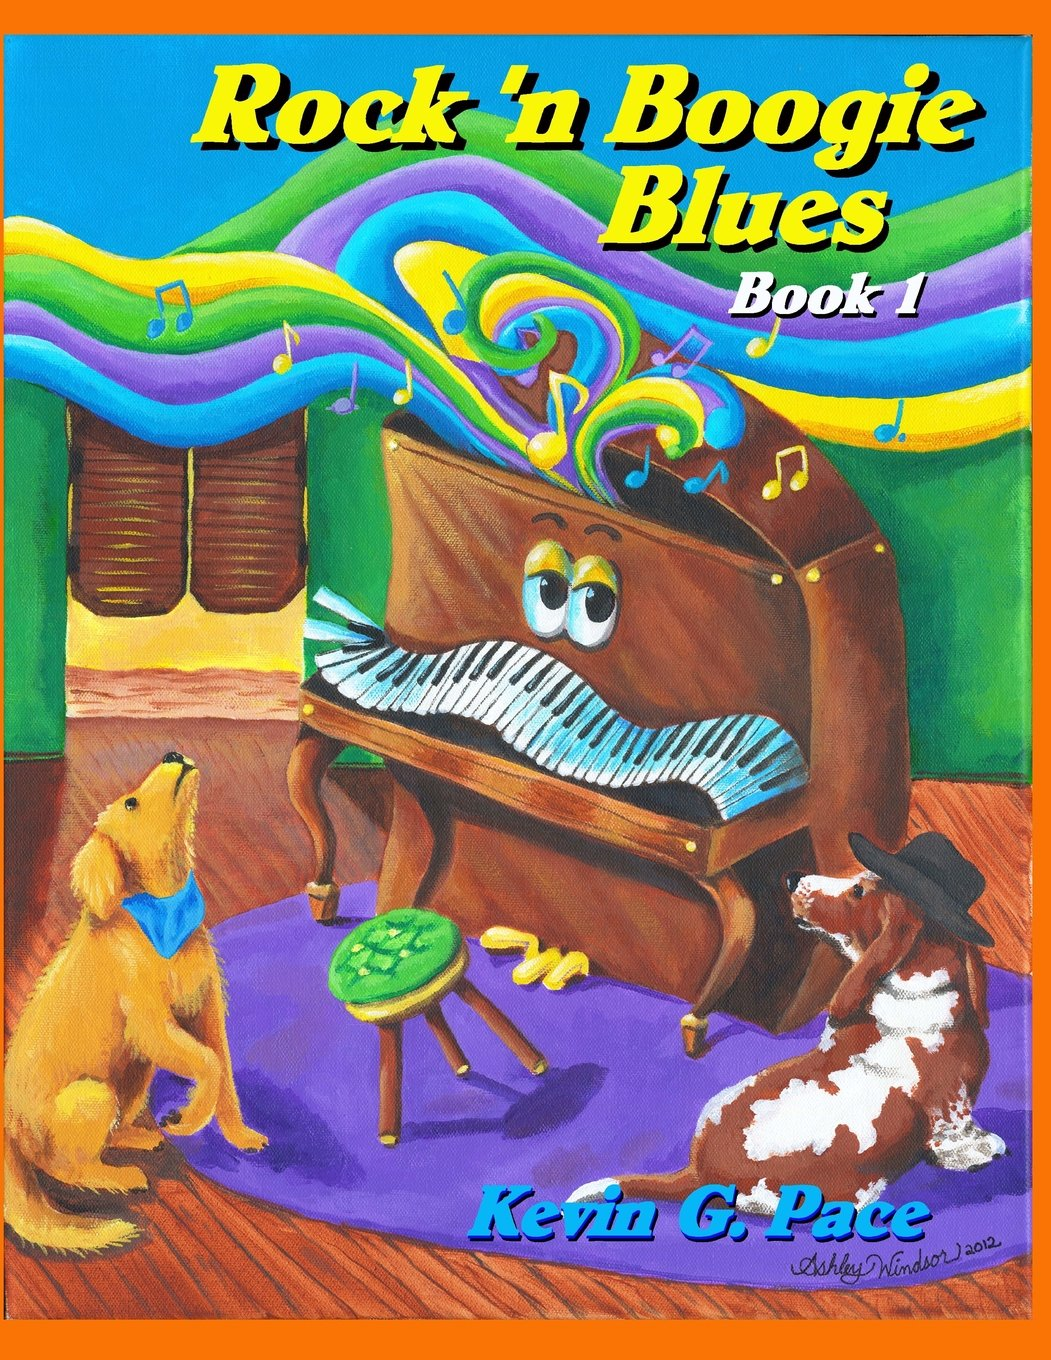 Rock 'n Boogie Blues Book 1: Piano Solos book 1 ebook